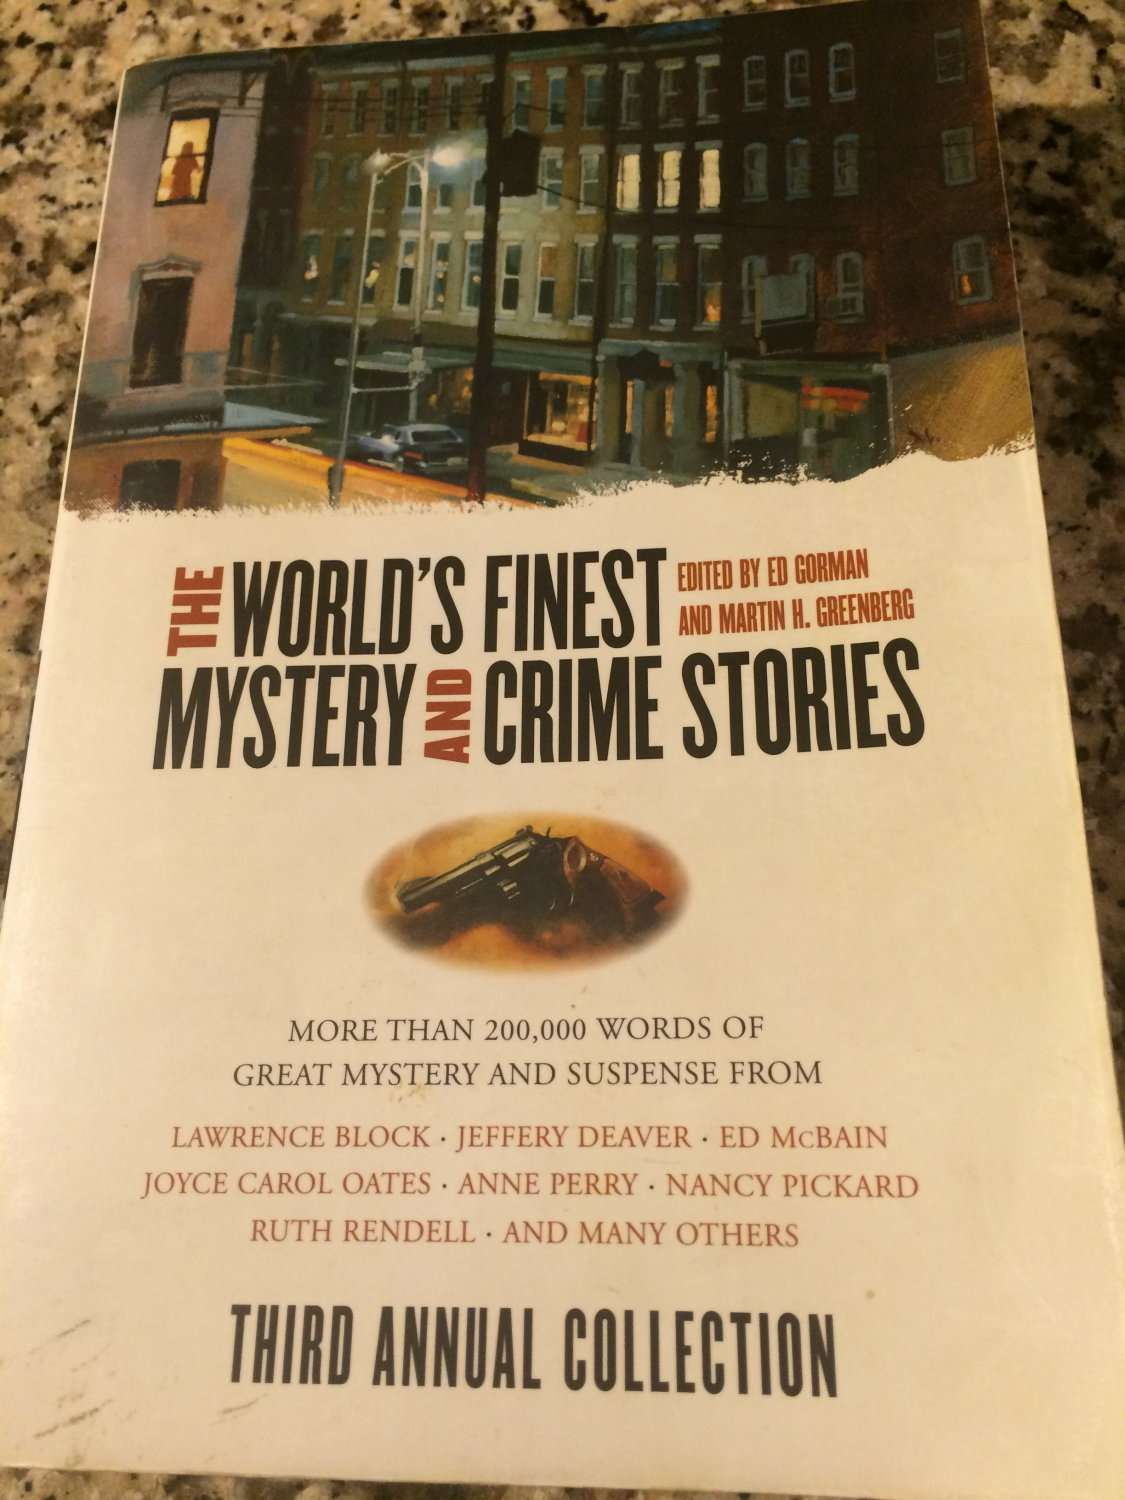 World's Finest Mystery and Crime: The World's Finest Mystery and Crime Stories 3 by E. Gorman (2002)